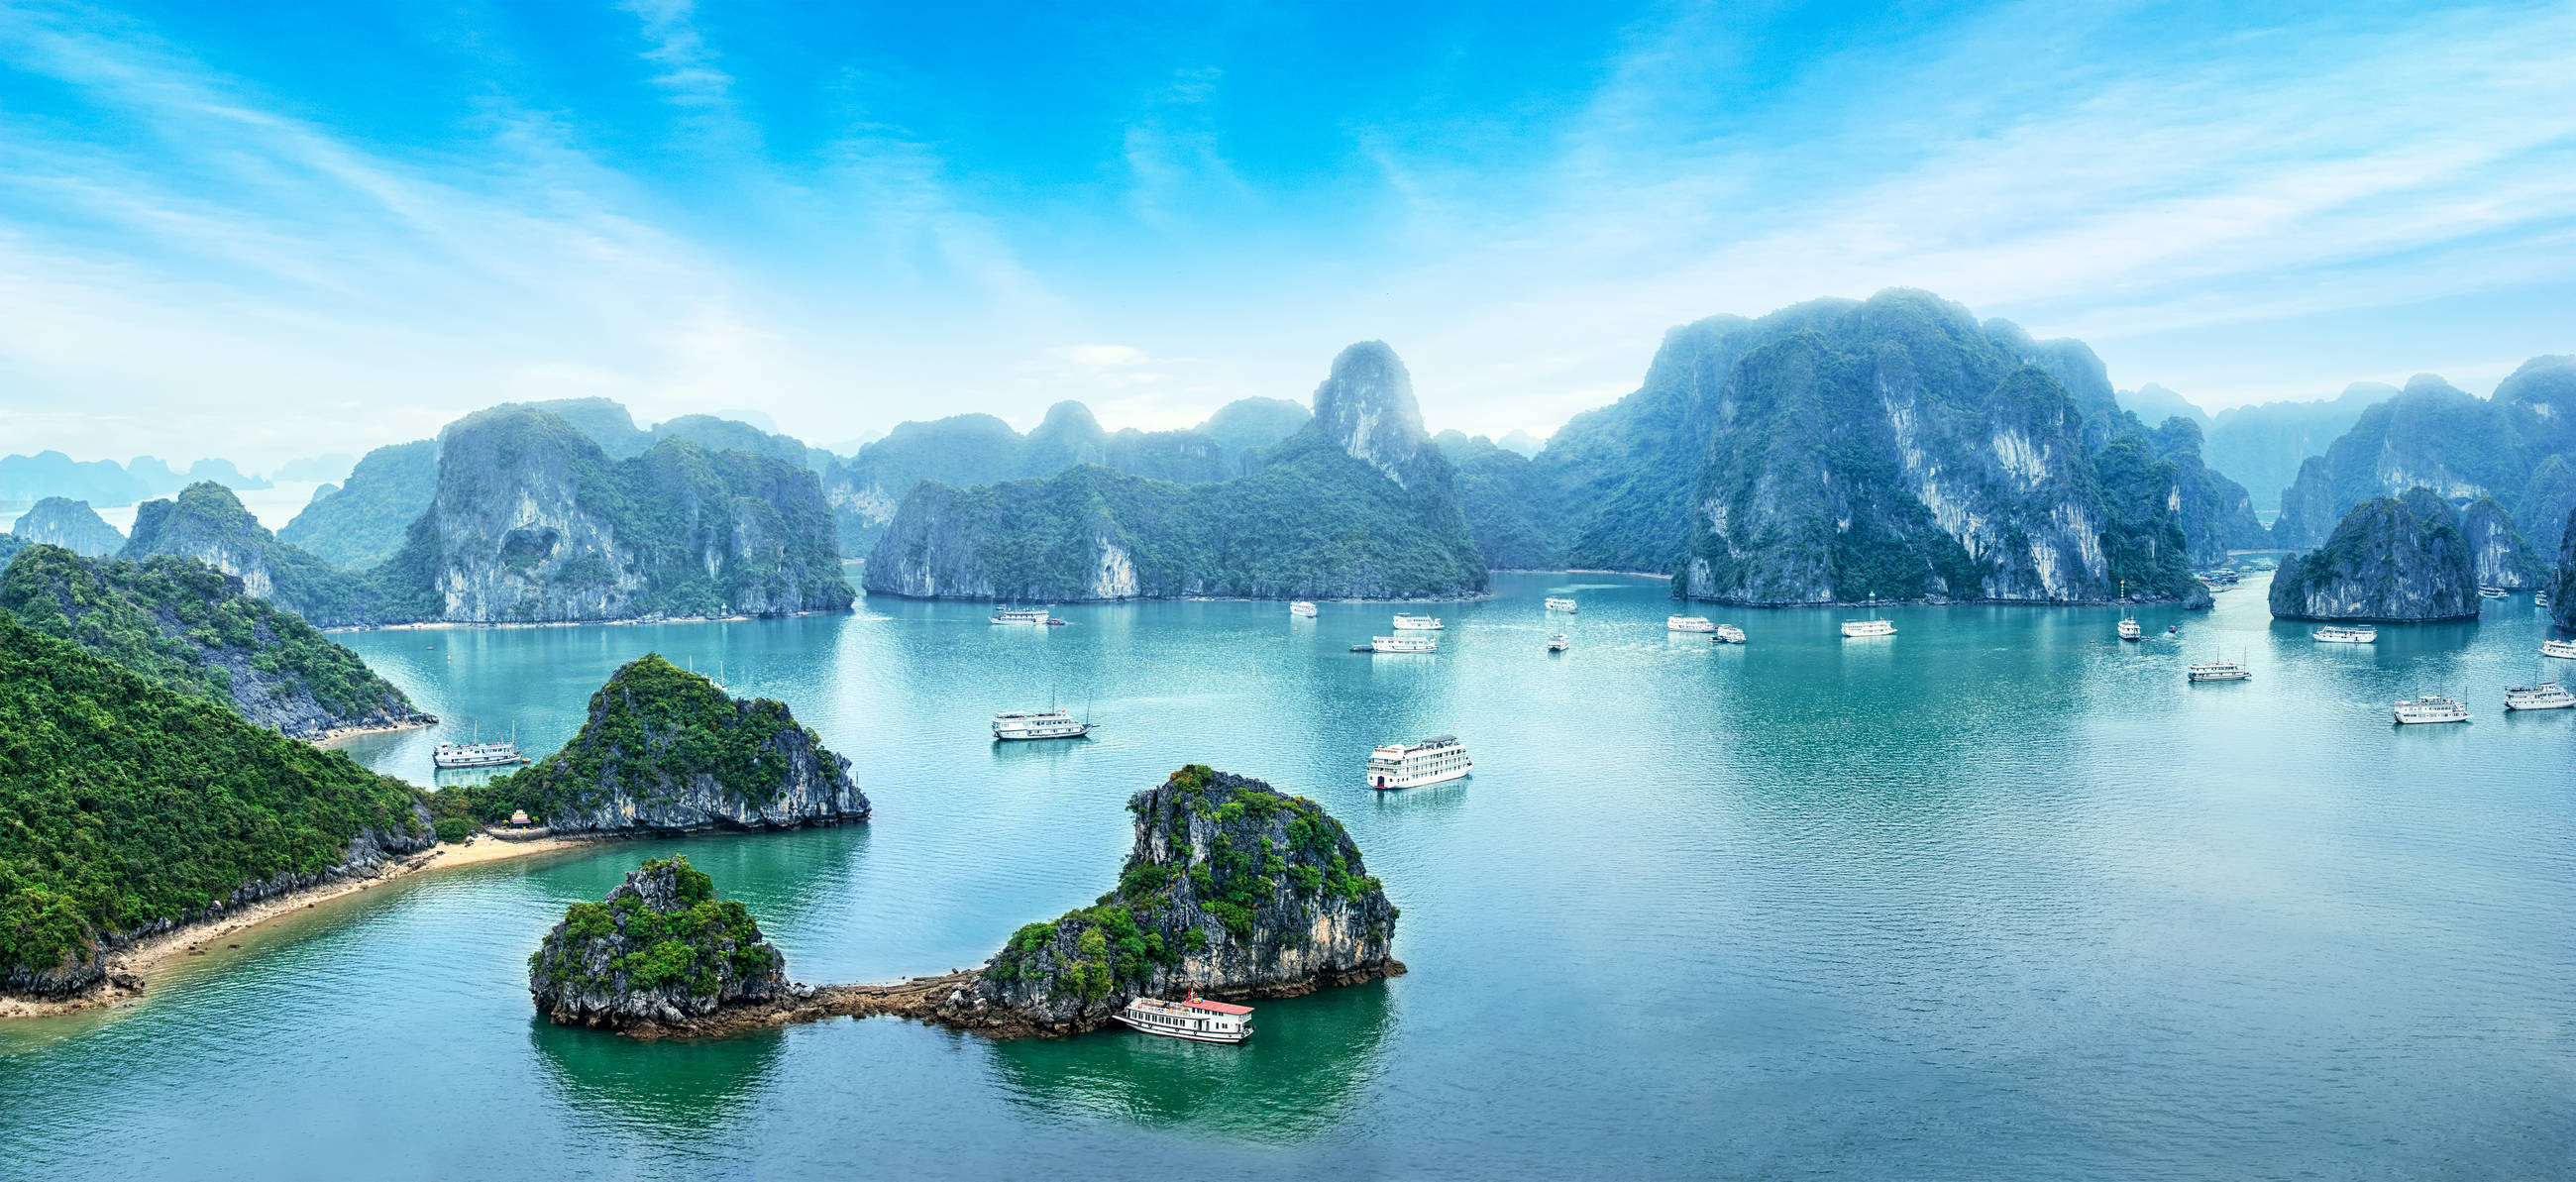 7-Things-You-Will-Only-Experience-In-Vietnam